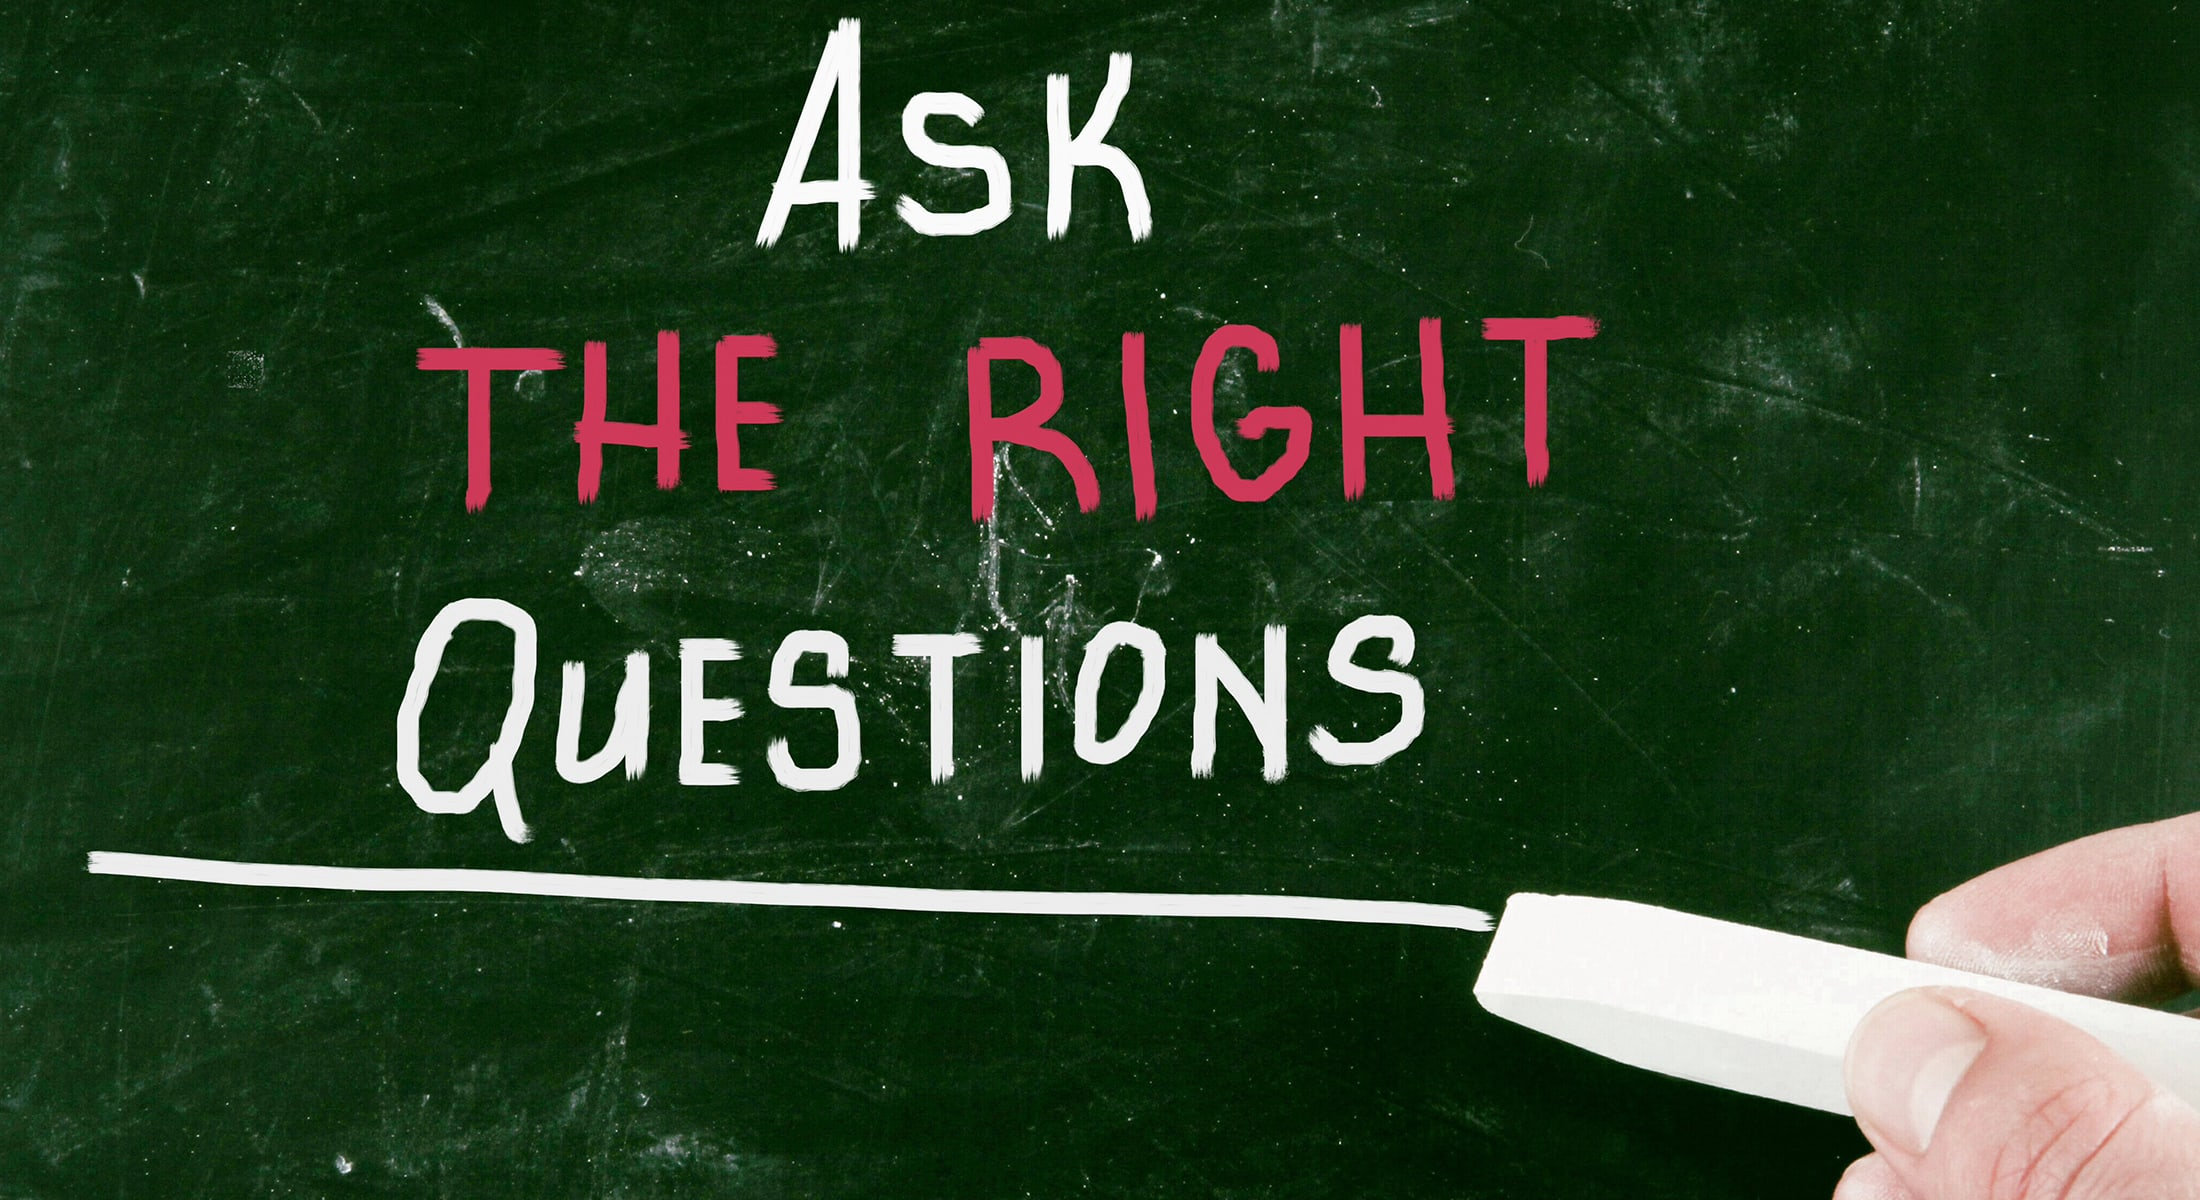 Ask the right questions, find the right problem